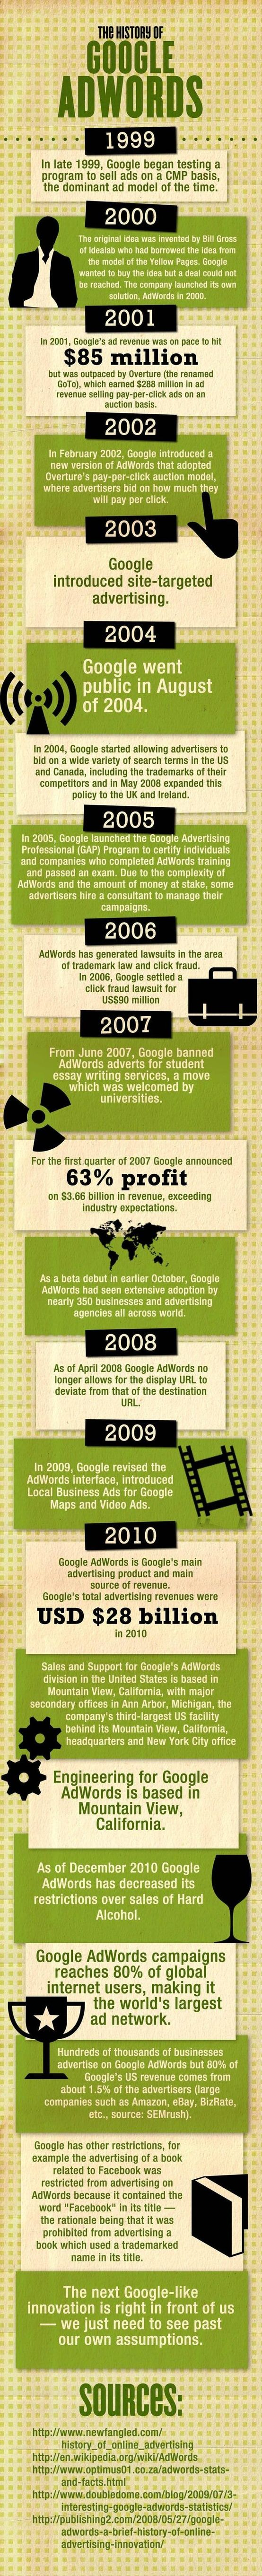 Adwords online forex trading history